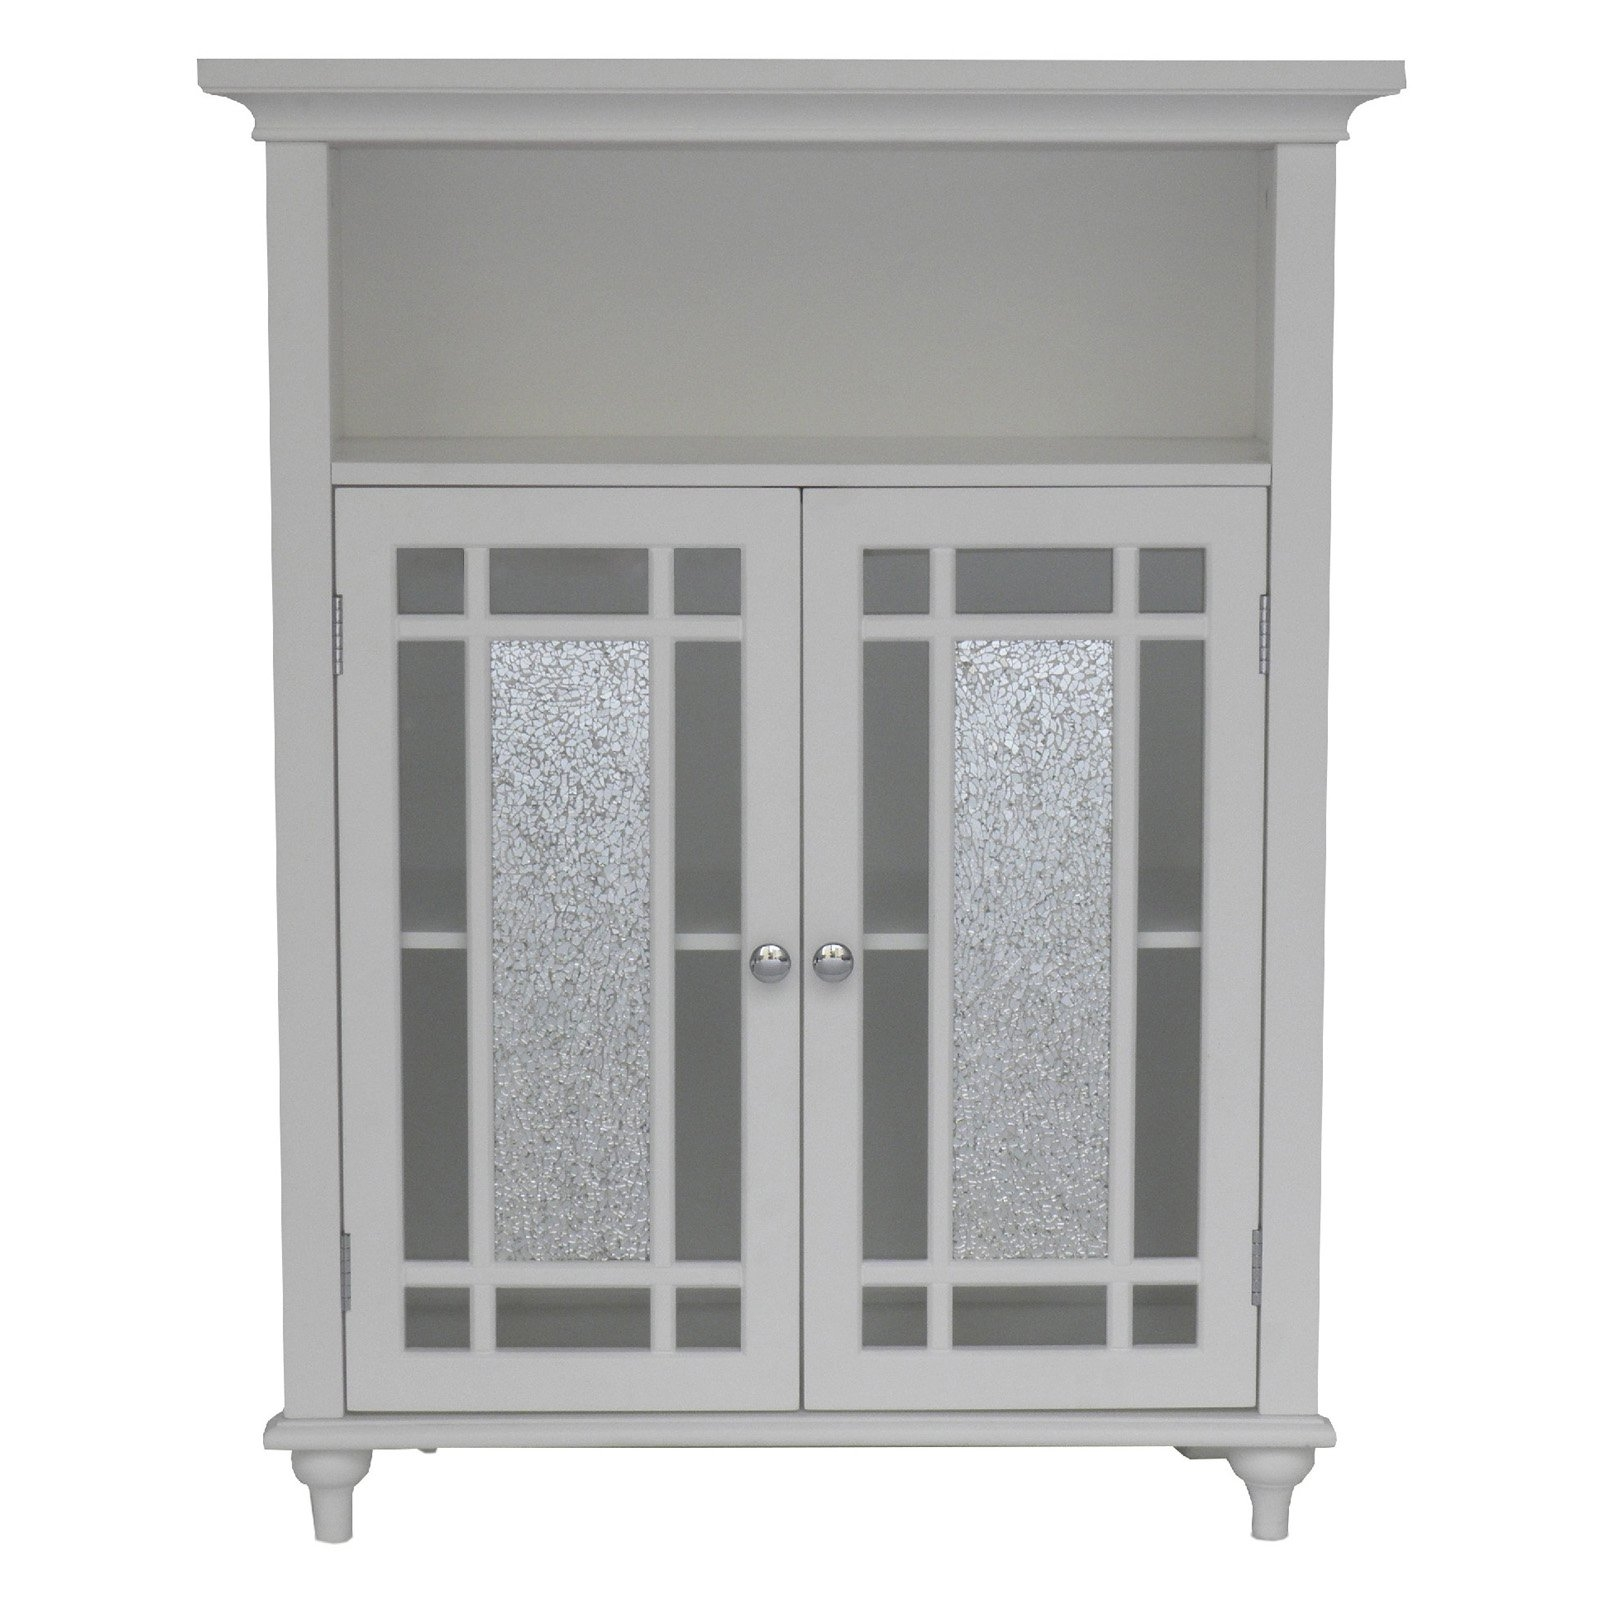 White Bathroom Storage Cabinets With Glass Doors